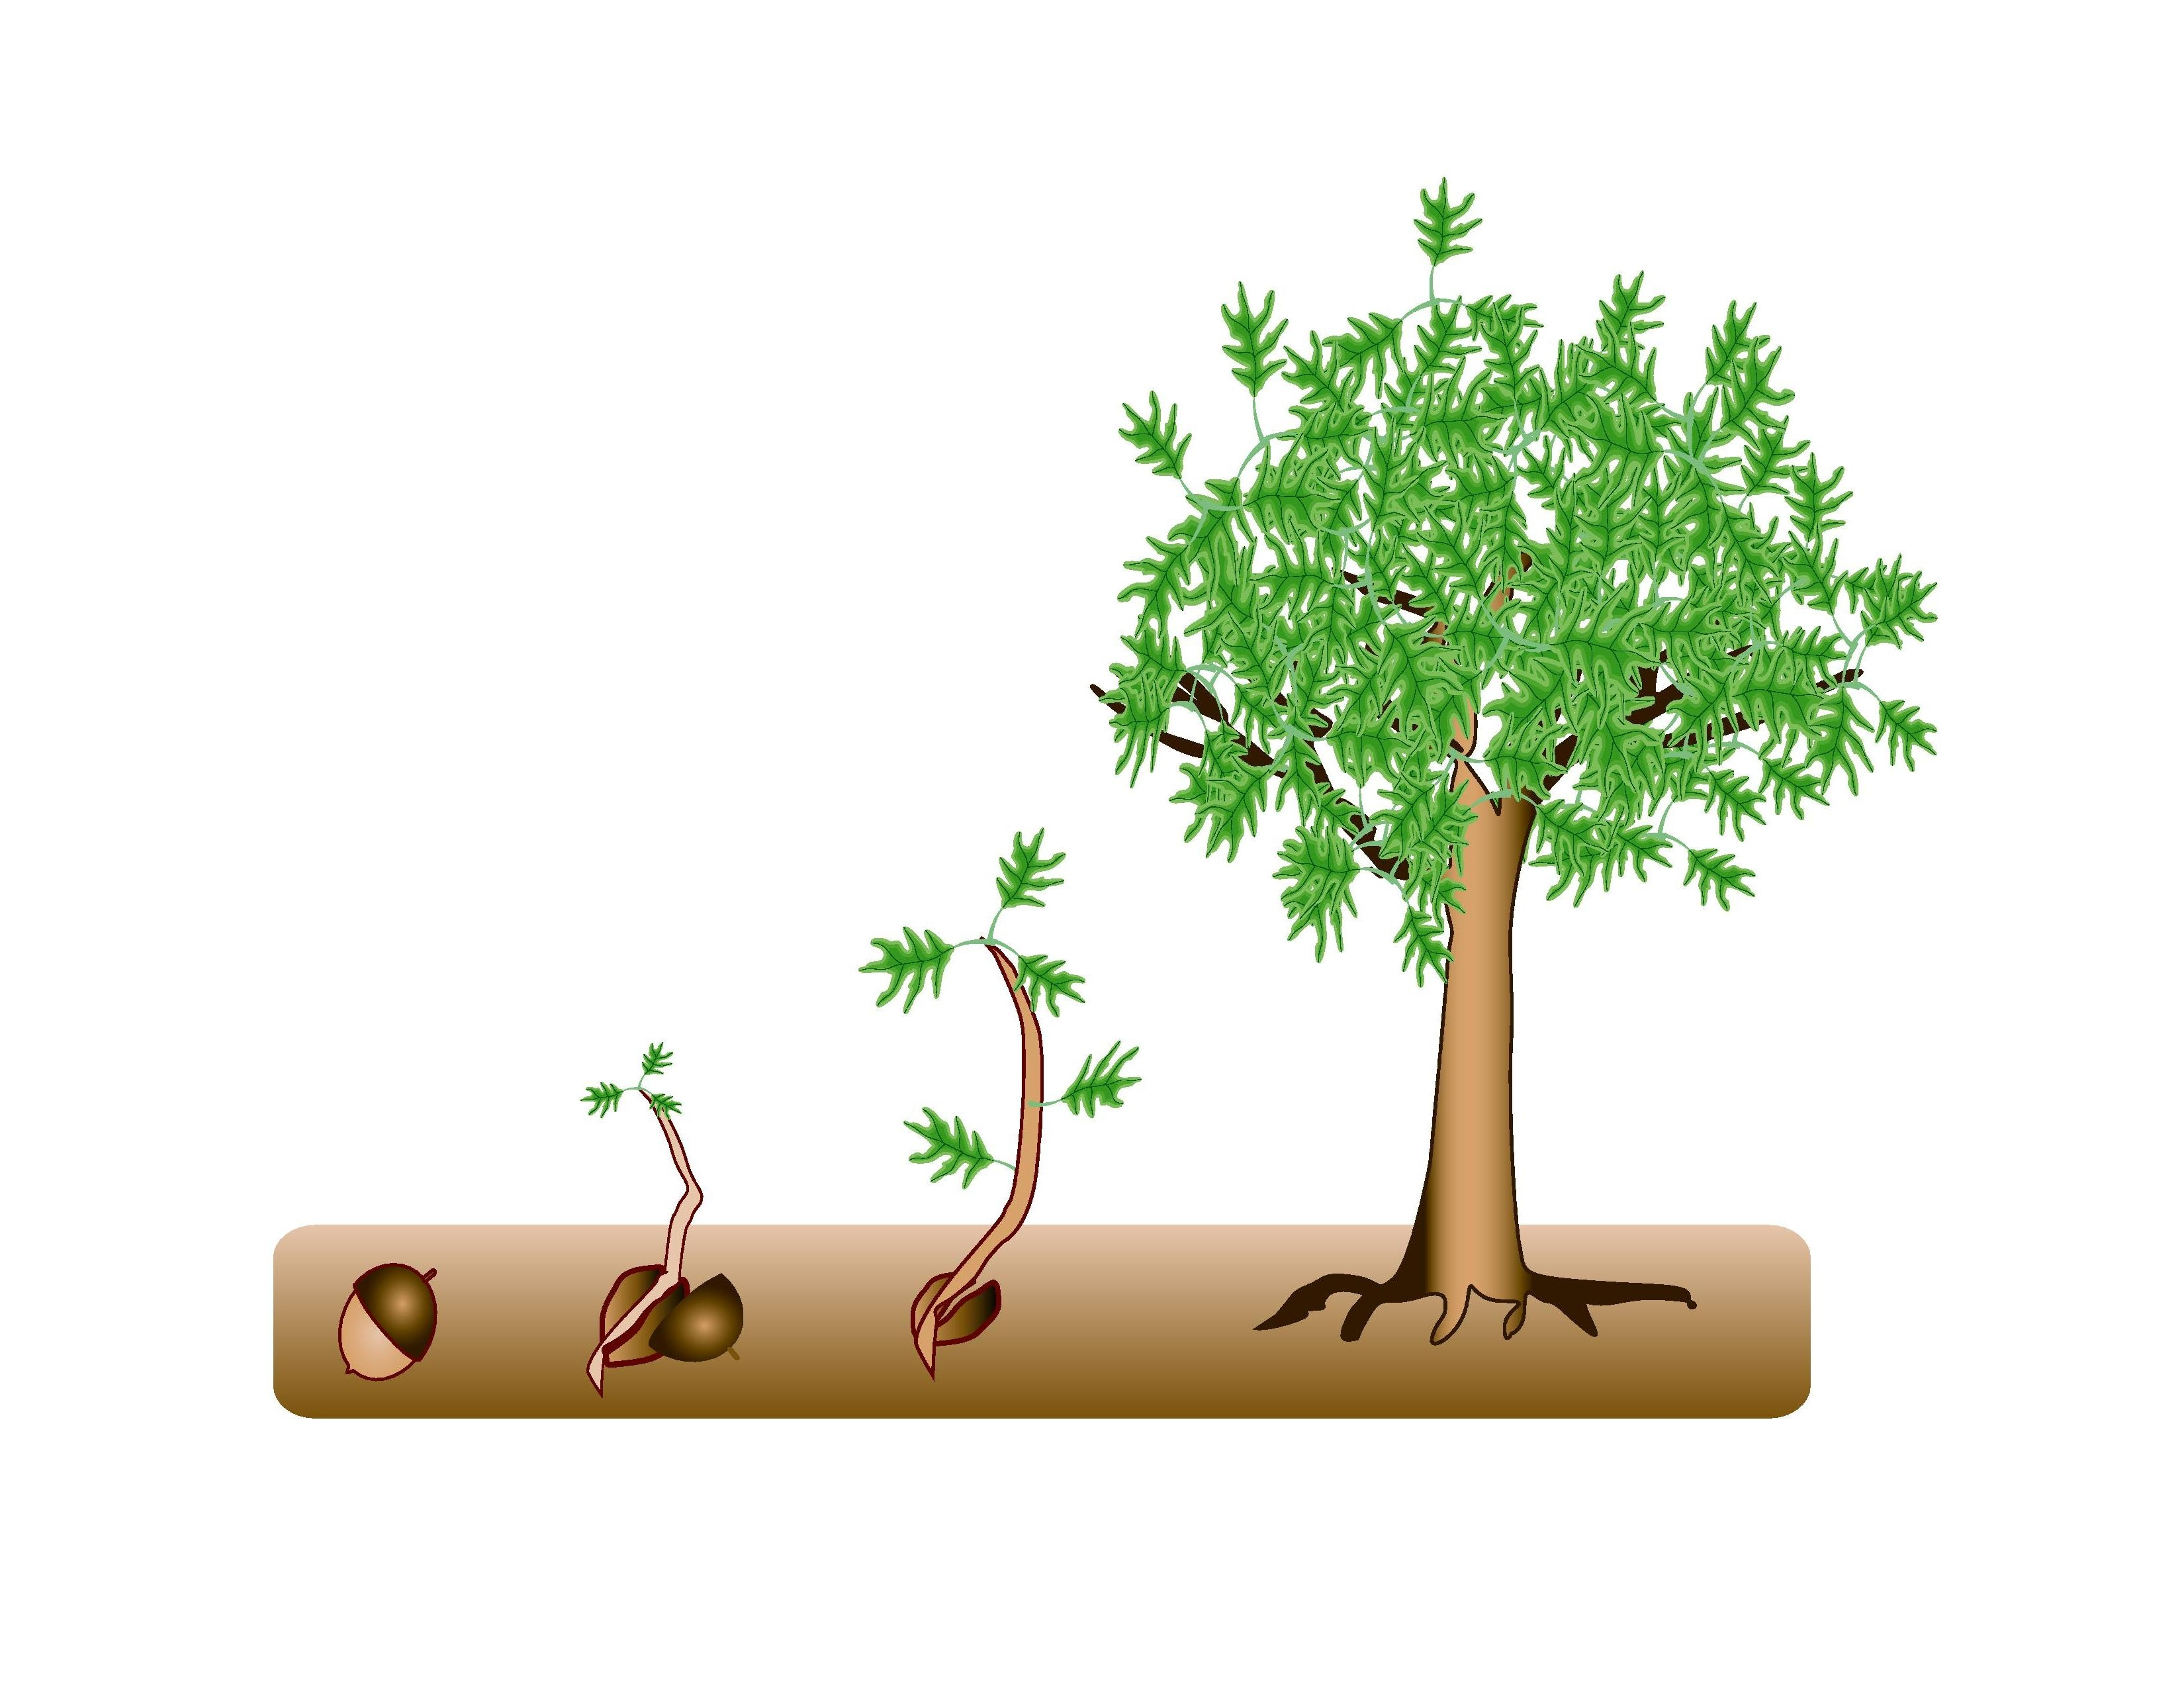 Plant clipart growing stage Plant Clipart more Clipart Growing